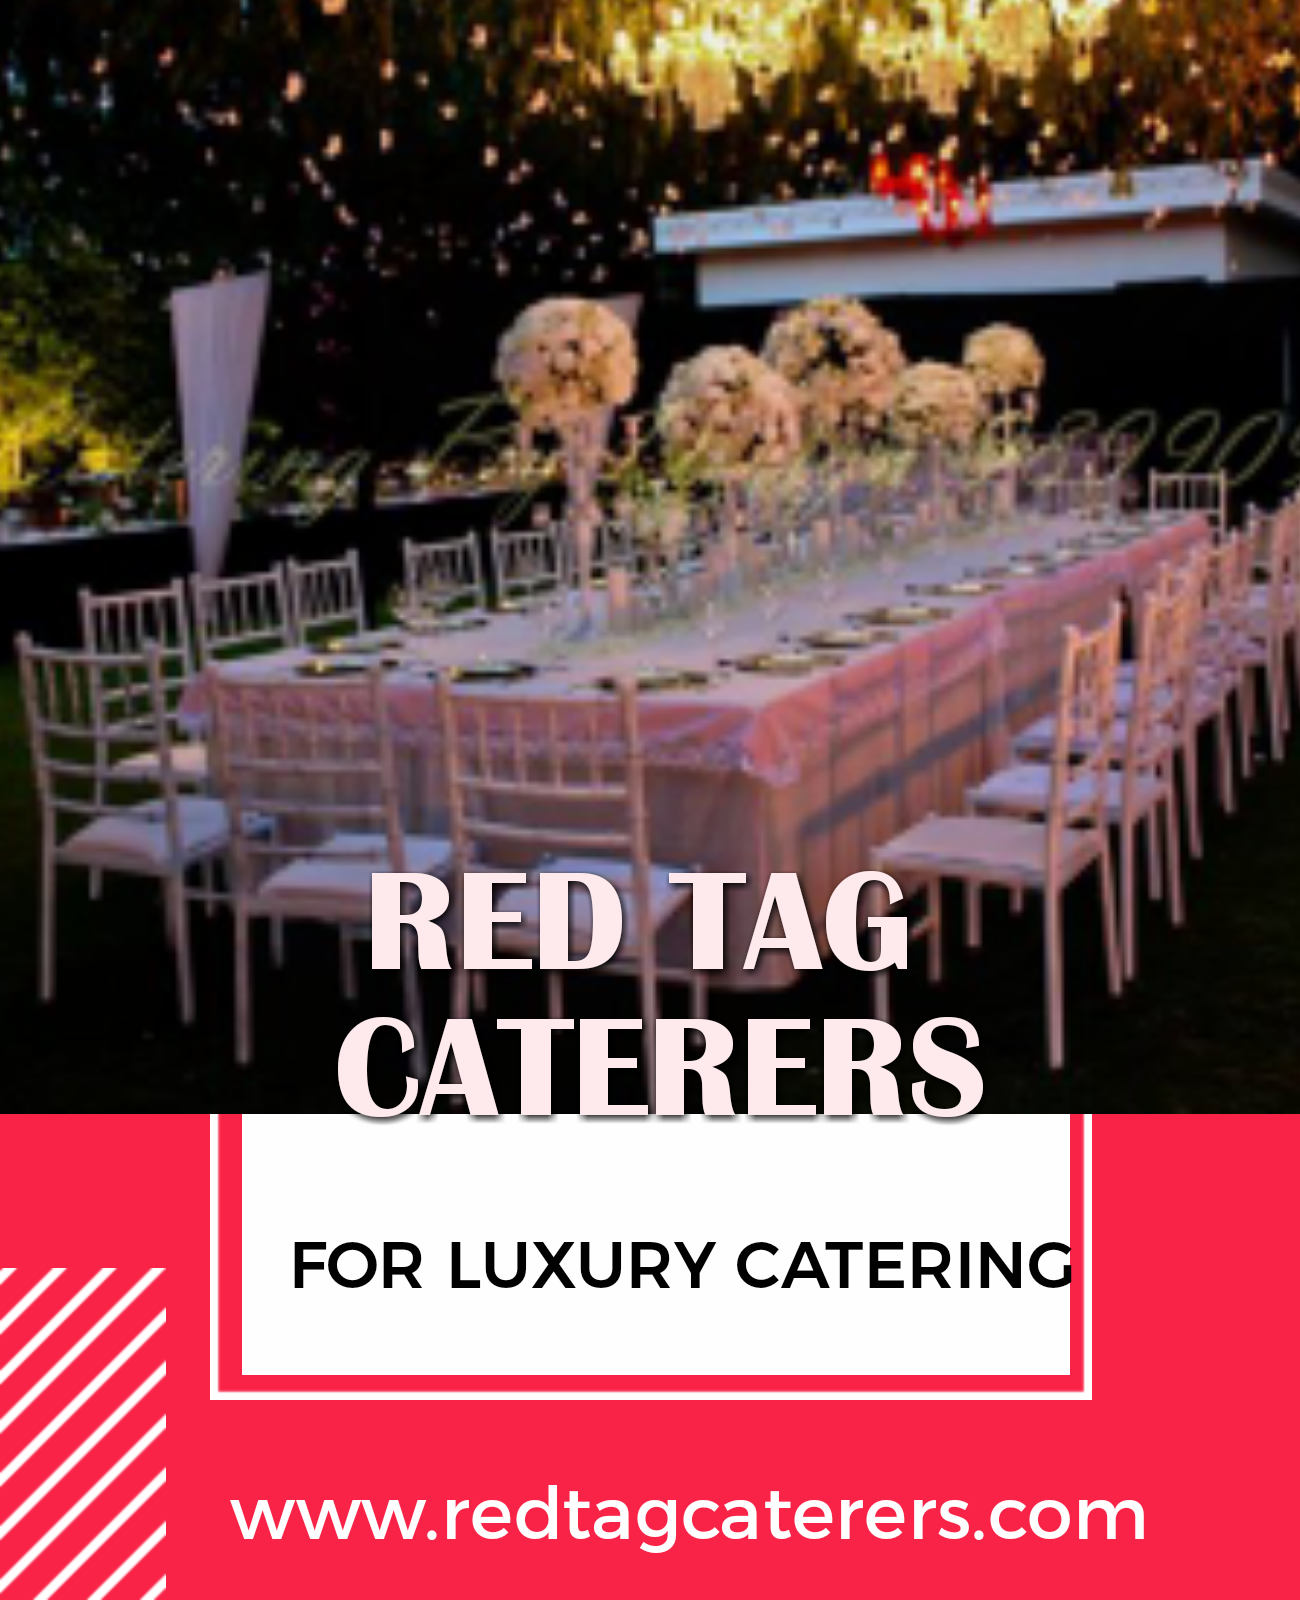 Red Tag Caterers, Best caterers in Ludhiana with professionals chefs, best wedding caterers in Ludhiana, best party catering service in Ludhiana, best hygienic food in Ludhiana, best luxury catering in Ludhiana,